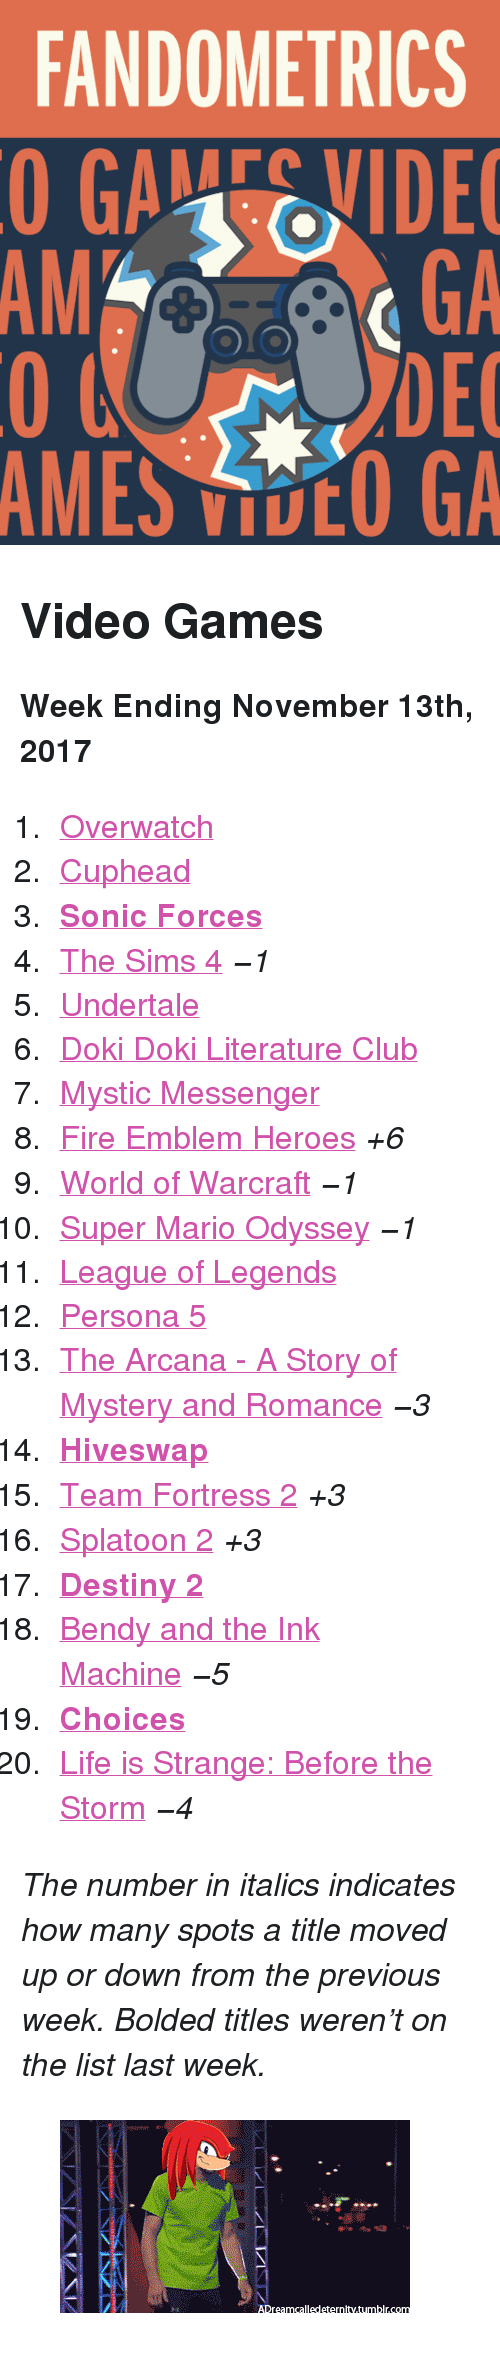 "Doki Doki Literature Club: FANDOMETRICS  GAEIDE  GA  DEC  MES DCO GA  AMGA <h2>Video Games</h2><p><b>Week Ending November 13th, 2017</b></p><ol><li><a href=""http://tumblr.co/6136DBj90"">Overwatch</a></li><li><a href=""http://tumblr.co/6137DBj9F"">Cuphead</a></li><li><a href=""http://tumblr.co/6138DBj92""><b>Sonic Forces</b></a></li><li><a href=""http://tumblr.co/6139DBj9N"">The Sims 4</a> <i><i>−1</i></i></li><li><a href=""http://tumblr.co/6130DBj94"">Undertale</a></li><li><a href=""http://tumblr.co/6131DBj9f"">Doki Doki Literature Club</a></li><li><a href=""http://tumblr.co/6132DBj9A"">Mystic Messenger</a></li><li><a href=""http://tumblr.co/6133DBj97"">Fire Emblem Heroes</a> <i>+6</i></li><li><a href=""http://tumblr.co/6134DBj9C"">World of Warcraft</a> <i><i>−1</i></i></li><li><a href=""http://tumblr.co/6135DBj9h"">Super Mario Odyssey</a> <i><i>−1</i></i></li><li><a href=""http://tumblr.co/6136DBji6"">League of Legends</a></li><li><a href=""http://tumblr.co/6137DBjiB"">Persona 5</a></li><li><a href=""http://tumblr.co/6138DBji8"">The Arcana - A Story of Mystery and Romance</a> <i><i>−3</i></i></li><li><a href=""http://tumblr.co/6139DBjiD""><b>Hiveswap</b></a></li><li><a href=""http://tumblr.co/6130DBjiE"">Team Fortress 2</a> <i>+3</i></li><li><a href=""http://tumblr.co/6131DBji1"">Splatoon 2</a> <i>+3</i></li><li><a href=""http://tumblr.co/6132DBjiG""><b>Destiny 2</b></a></li><li><a href=""http://tumblr.co/6133DBjiH"">Bendy and the Ink Machine</a> <i><i>−5</i></i></li><li><a href=""http://tumblr.co/6134DBjiy""><b>Choices</b></a></li><li><a href=""http://tumblr.co/6135DBjiJ"">Life is Strange: Before the Storm</a> <i><i>−4</i></i></li></ol><p><i>The number in italics indicates how many spots a title moved up or down from the previous week. Bolded titles weren't on the list last week.</i></p><figure class=""tmblr-full"" data-orig-height=""193"" data-orig-width=""350"" data-tumblr-attribution=""adreamcalledeternity:jWHJ8JJWp8bNA-BQp7UGPw:ZRXZMh2RlwMwb""><img src=""https://78.media.tumblr.com/4a22e54eaac58b8d55eb50705c122b87/tumblr_oz1znpvh1B1vrol01o1_400.gif"" data-orig-height=""193"" data-orig-width=""350""/></figure>"